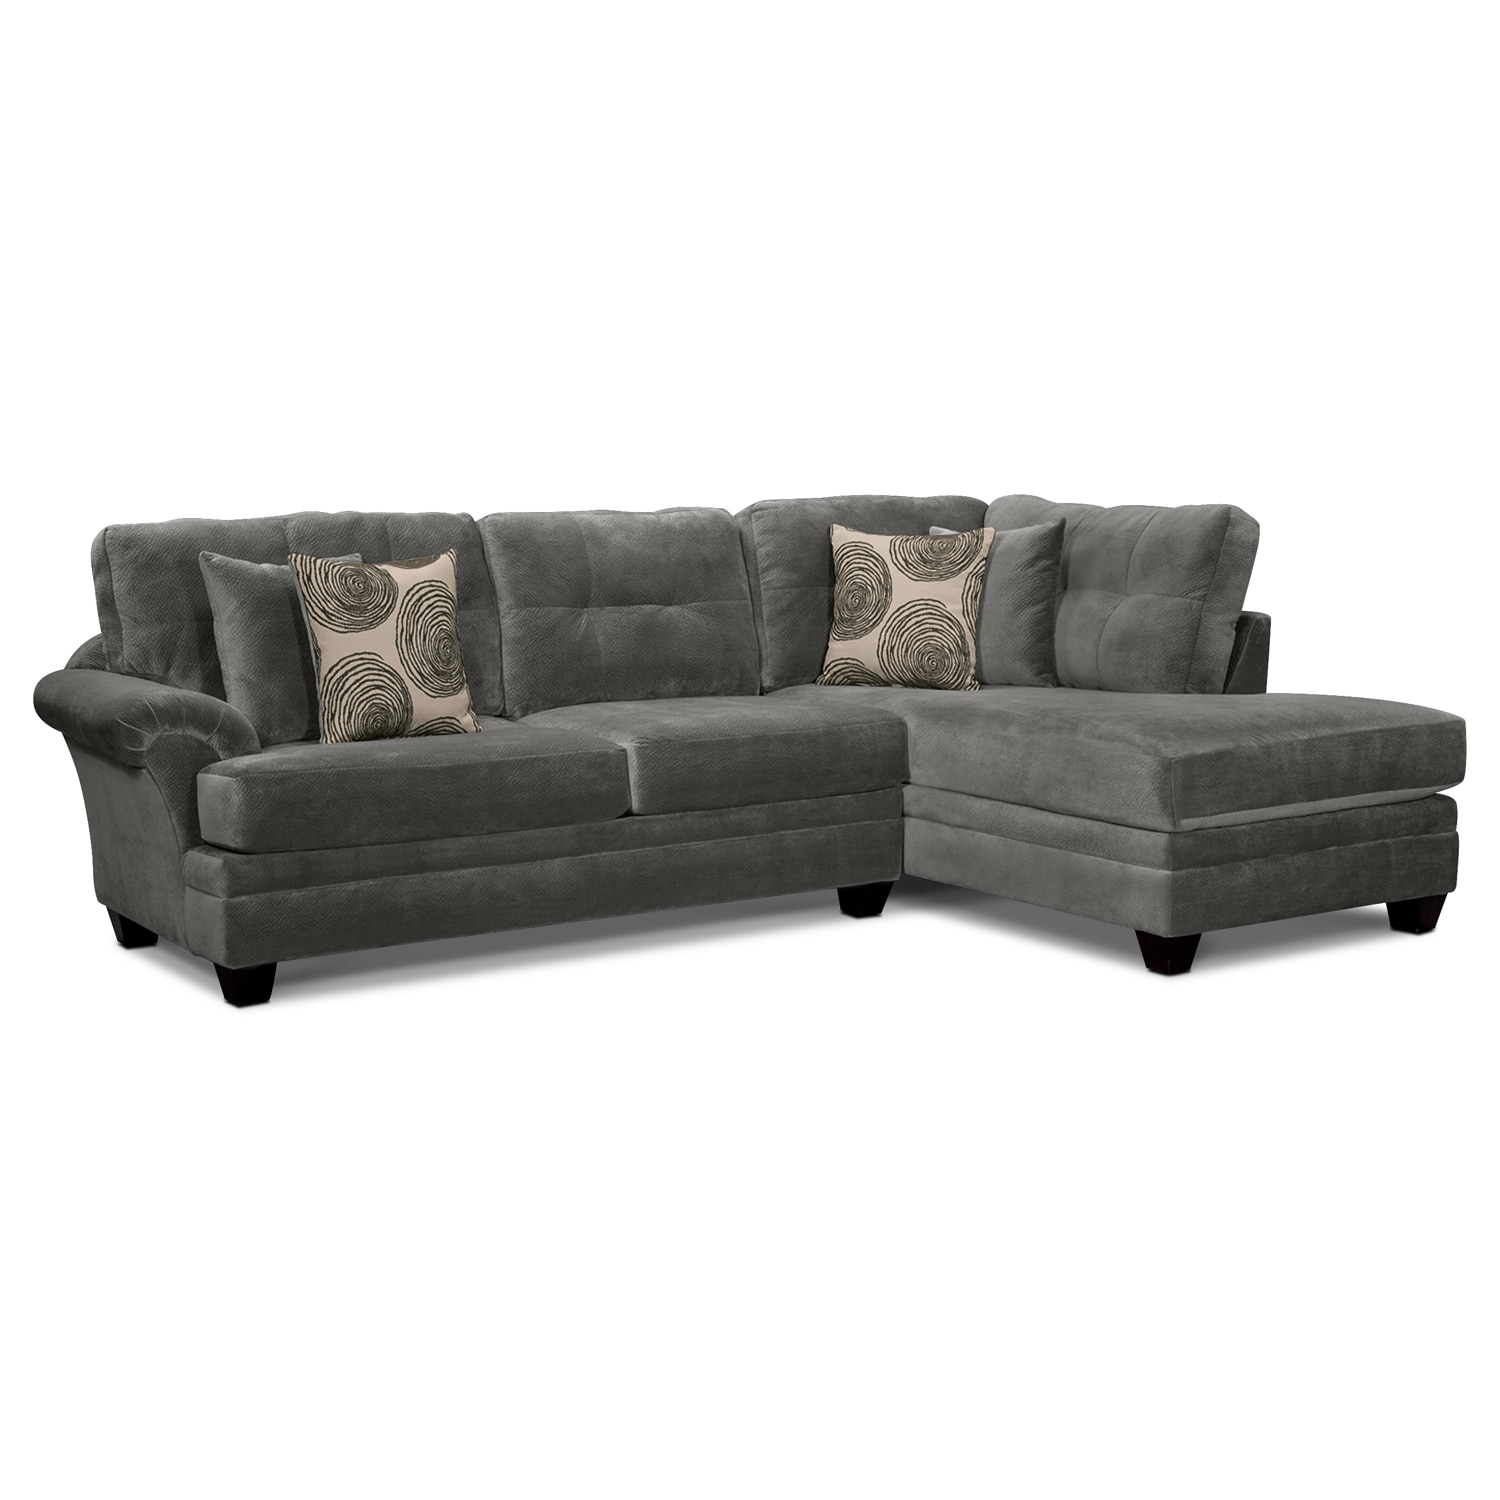 Cordelle 2 piece right facing chaise sectional gray for 2 piece sectional with chaise lounge